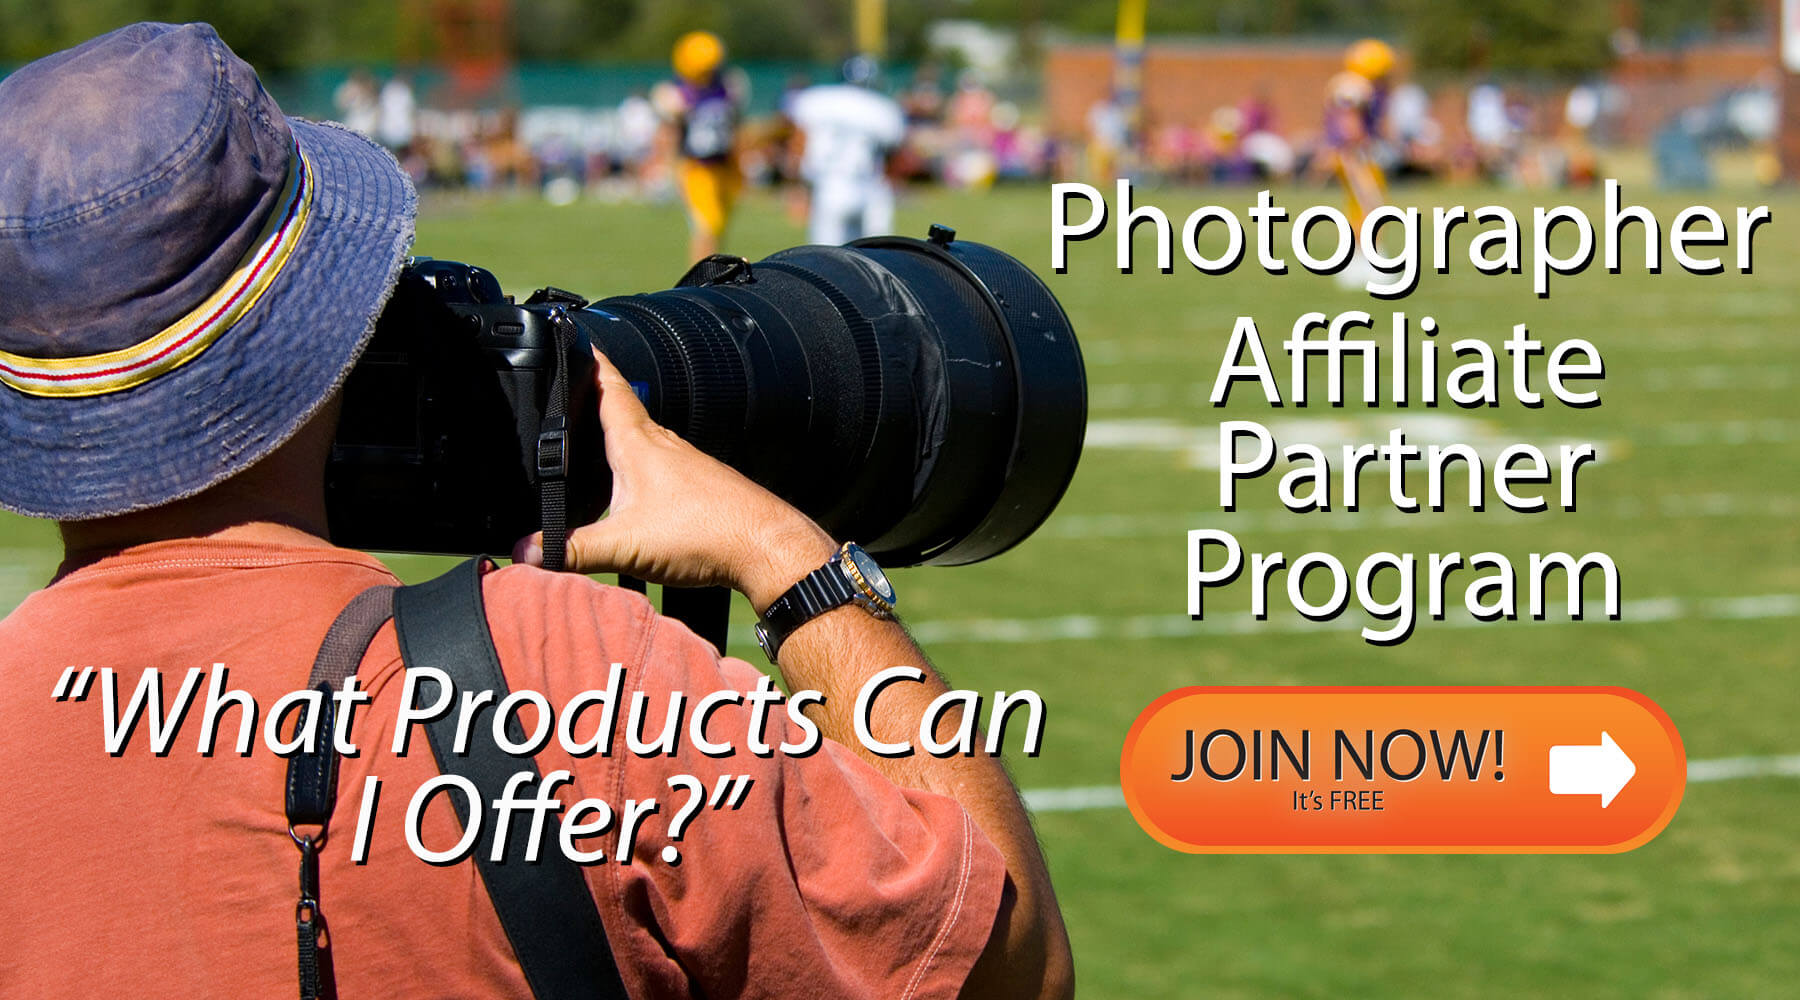 Wallhogs Photographer Affiliate Partner Program | What Products Can I Offer?